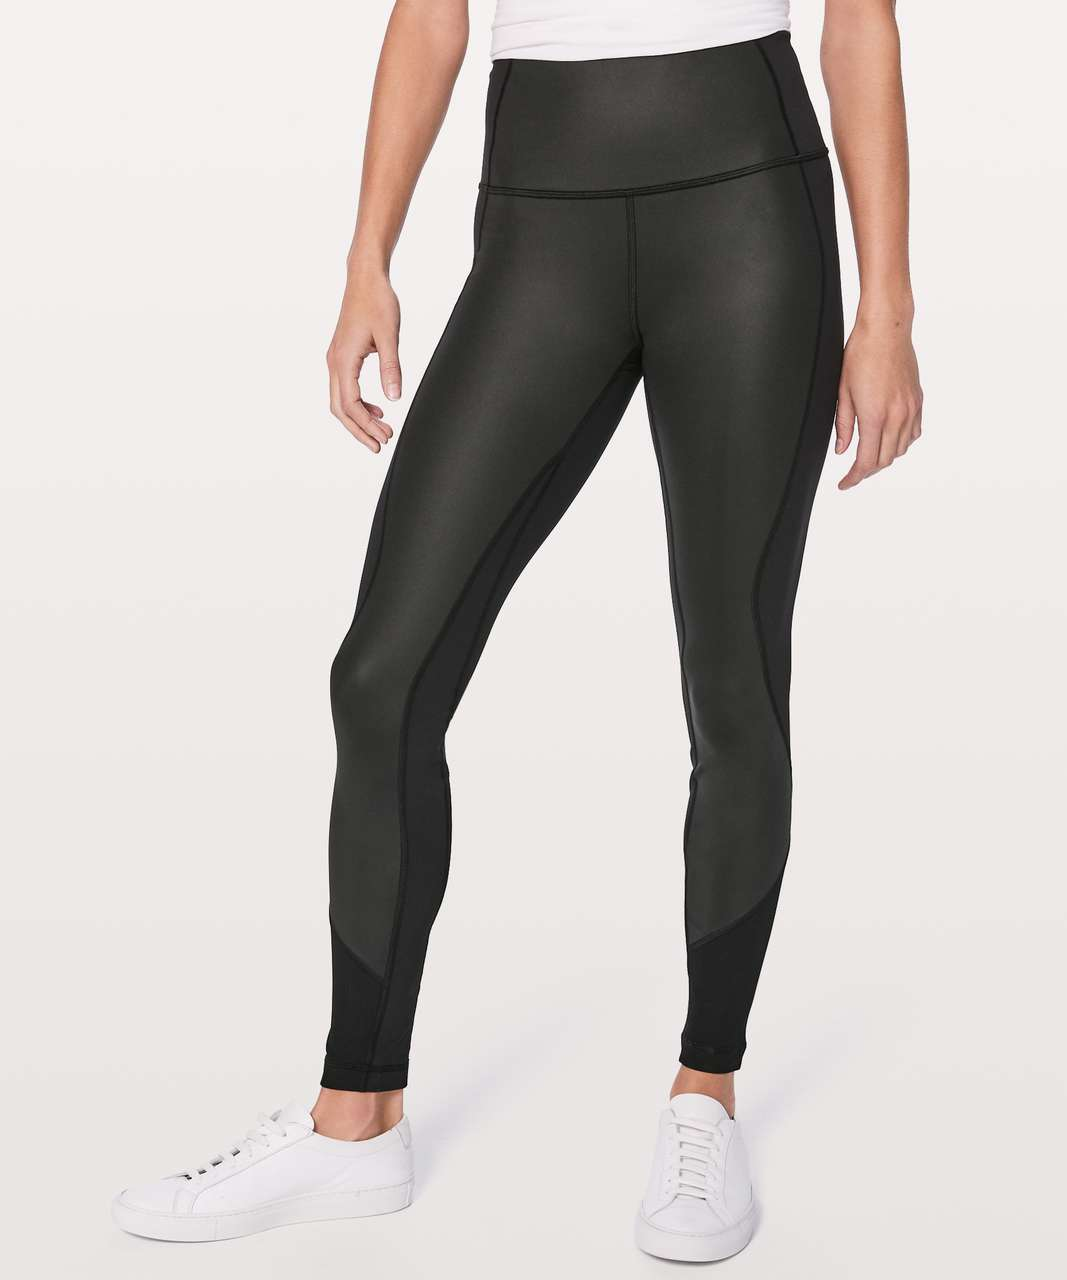 "Lululemon Wunder Under Hi-Rise Tight (Sheen) *Full-On Luxtreme *28"" - Black"